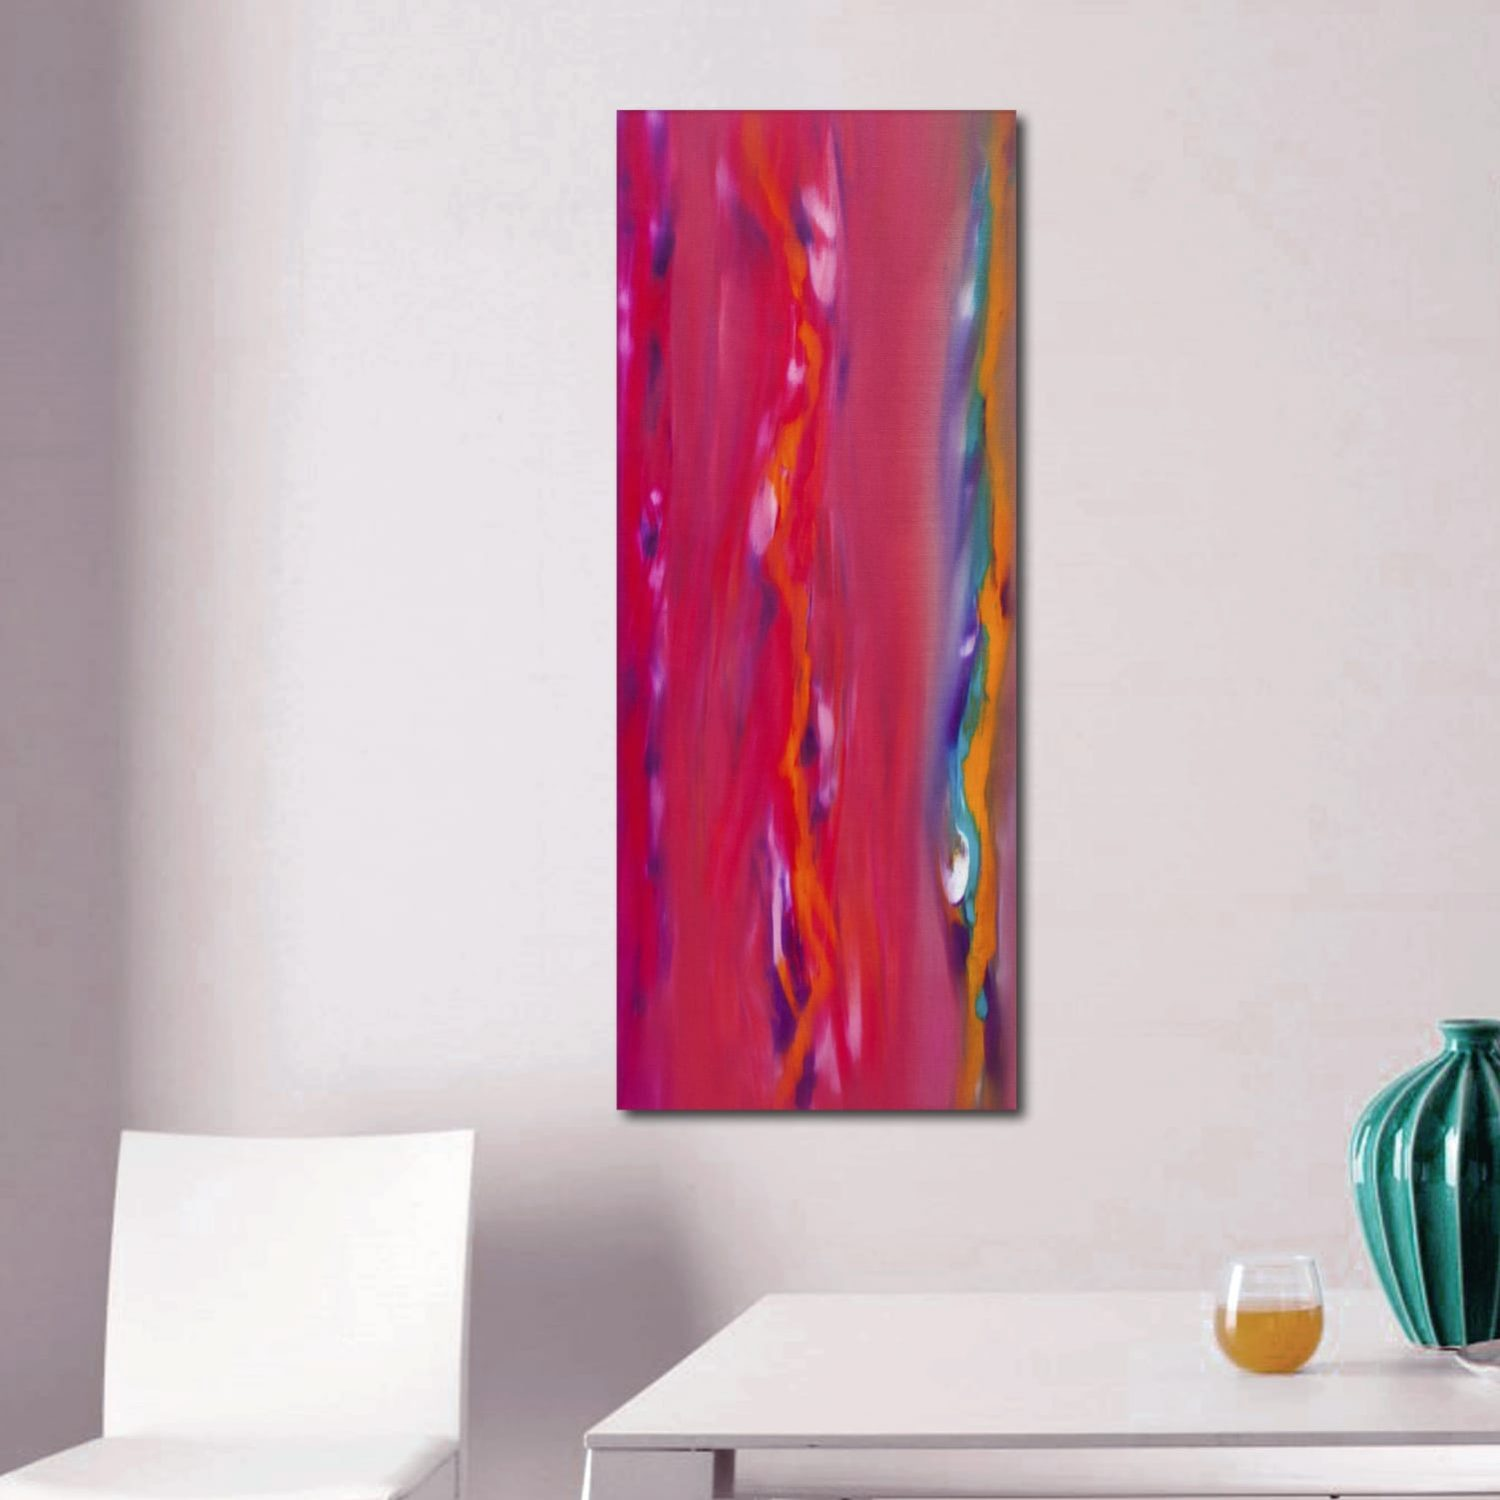 Sunset anomaly II 100x40 quadro astratto in vendita online